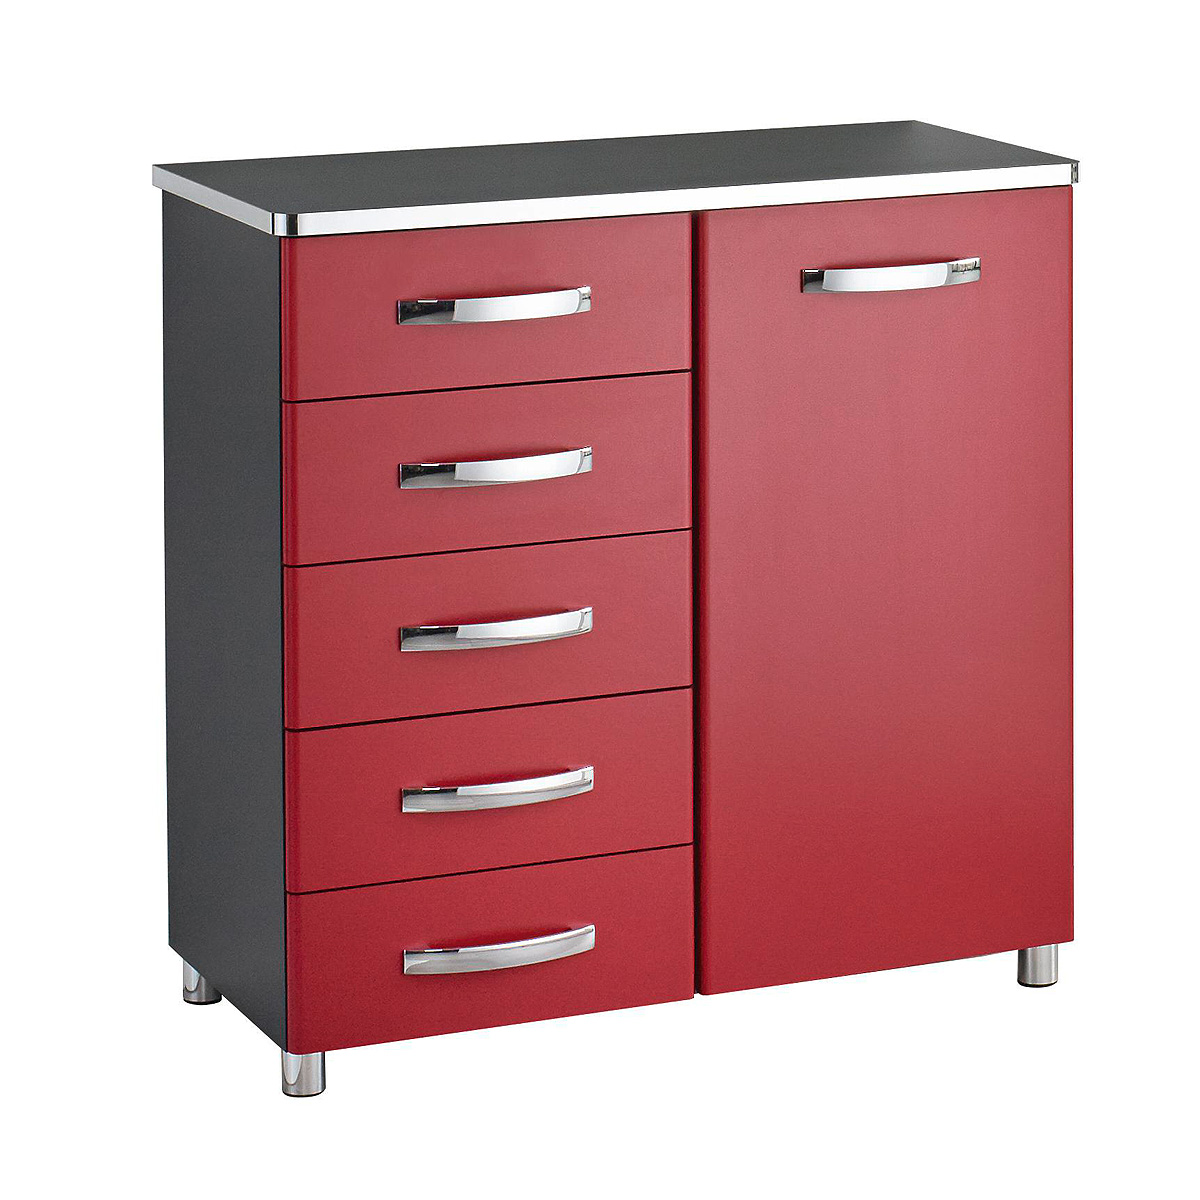 kommode cubana sideboard anrichte schrank in schwarz rot und chrom ebay. Black Bedroom Furniture Sets. Home Design Ideas